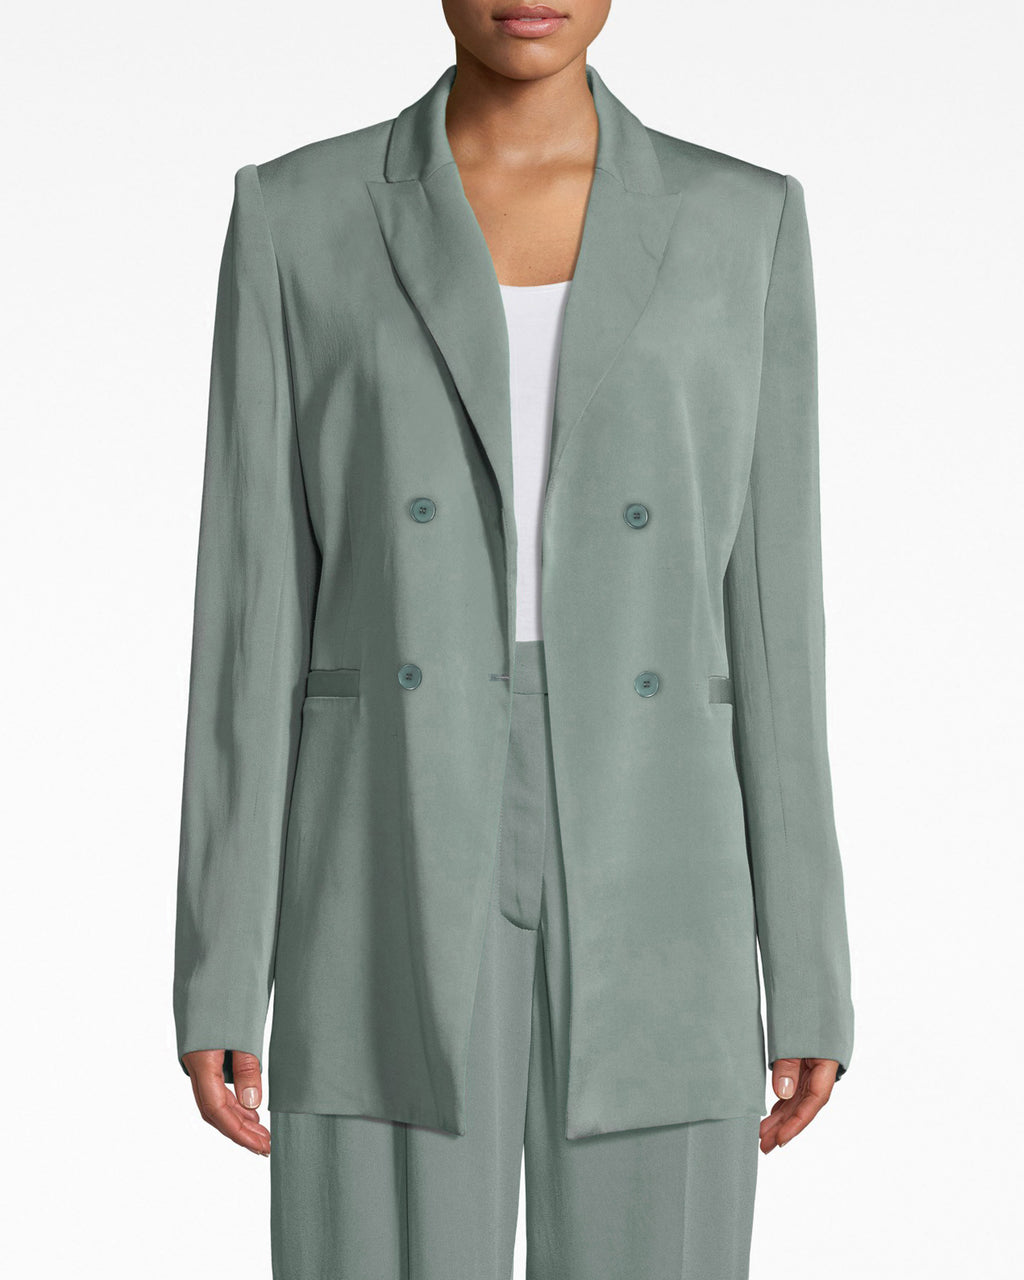 BQ10373 - SATIN BACK CREPE BOYFRIEND JACKET - outerwear - blazers - LIGHTWEIGHT FABRIC AND A TAILORED YET RELAXED FIT MAKE THIS A GO TO PIECE FOR WORKDAYS OR WEEKENDS. PAIR WITH THE MATCHING PANTS FOR A COOL MONOCHROMEOUTFIT.